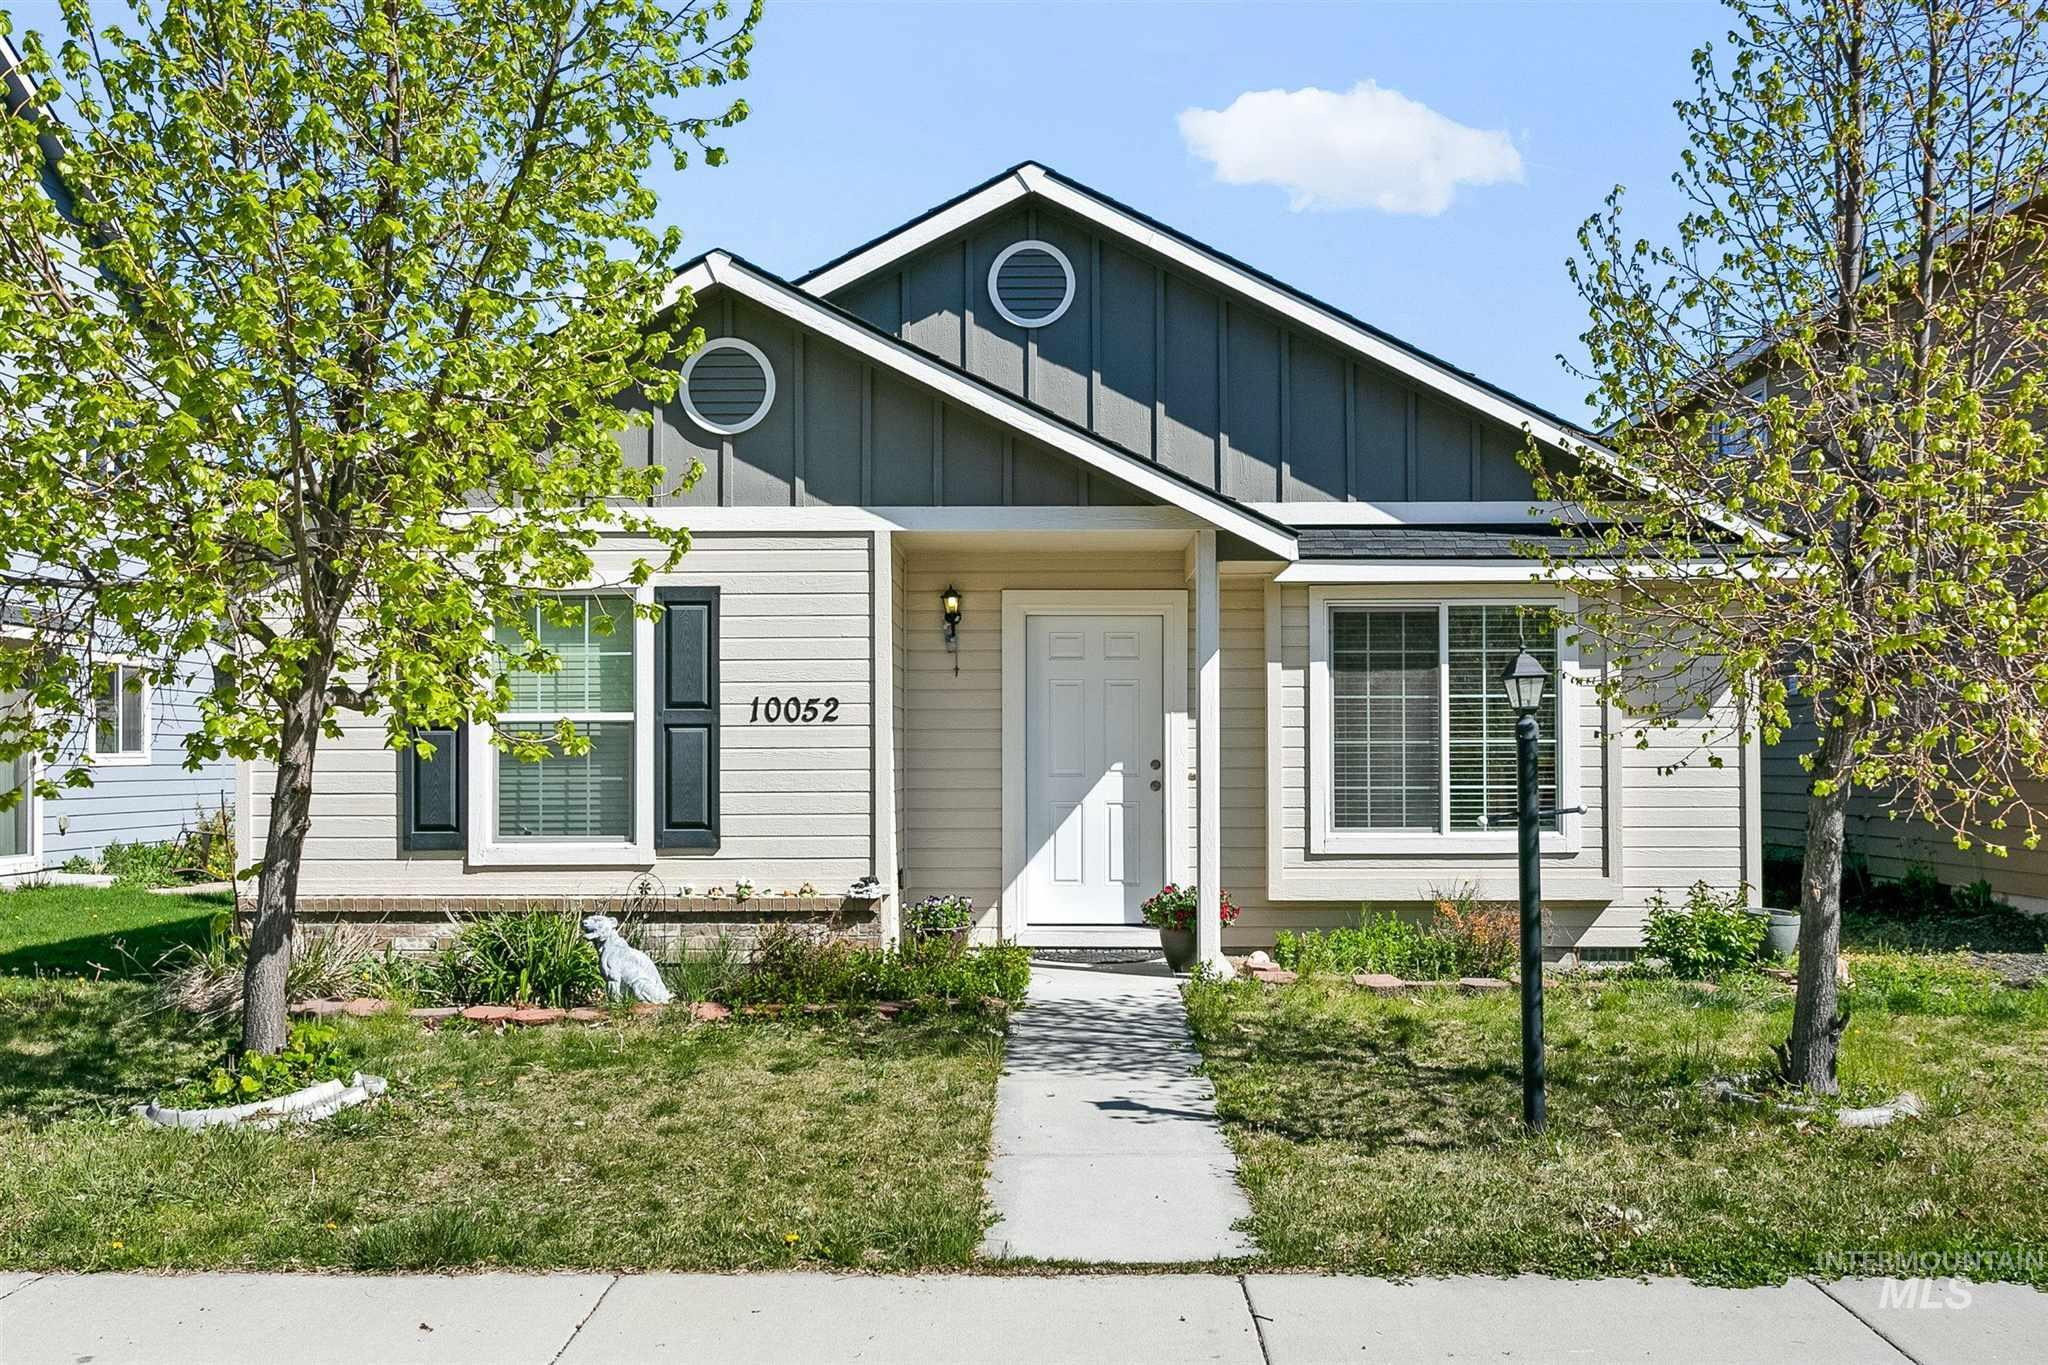 10052 W Tilmont St Property Photo - Boise, ID real estate listing